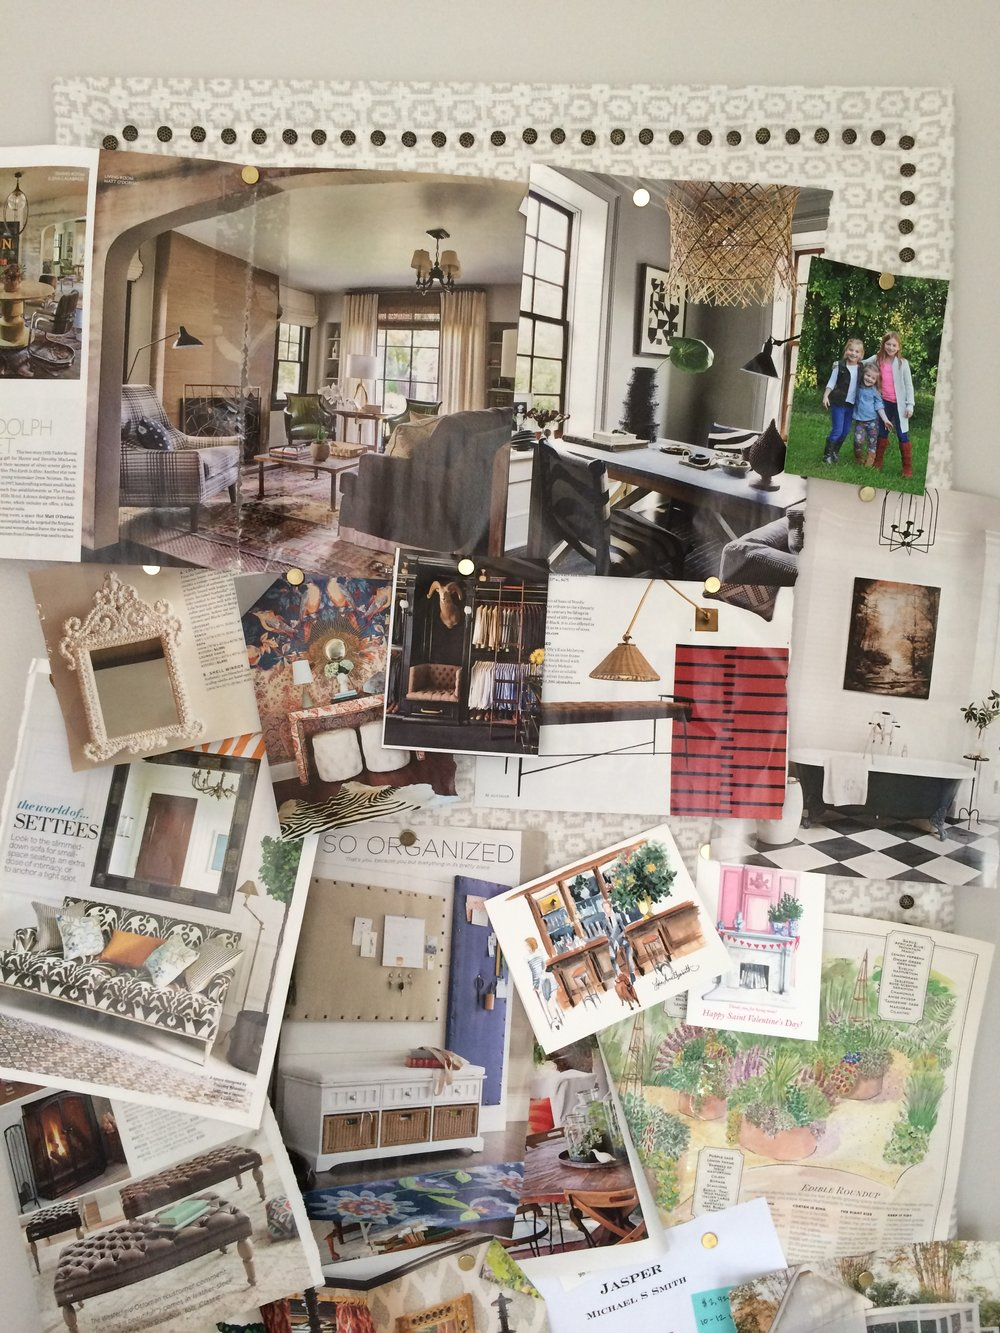 Alison Giese Interiors inspiration board